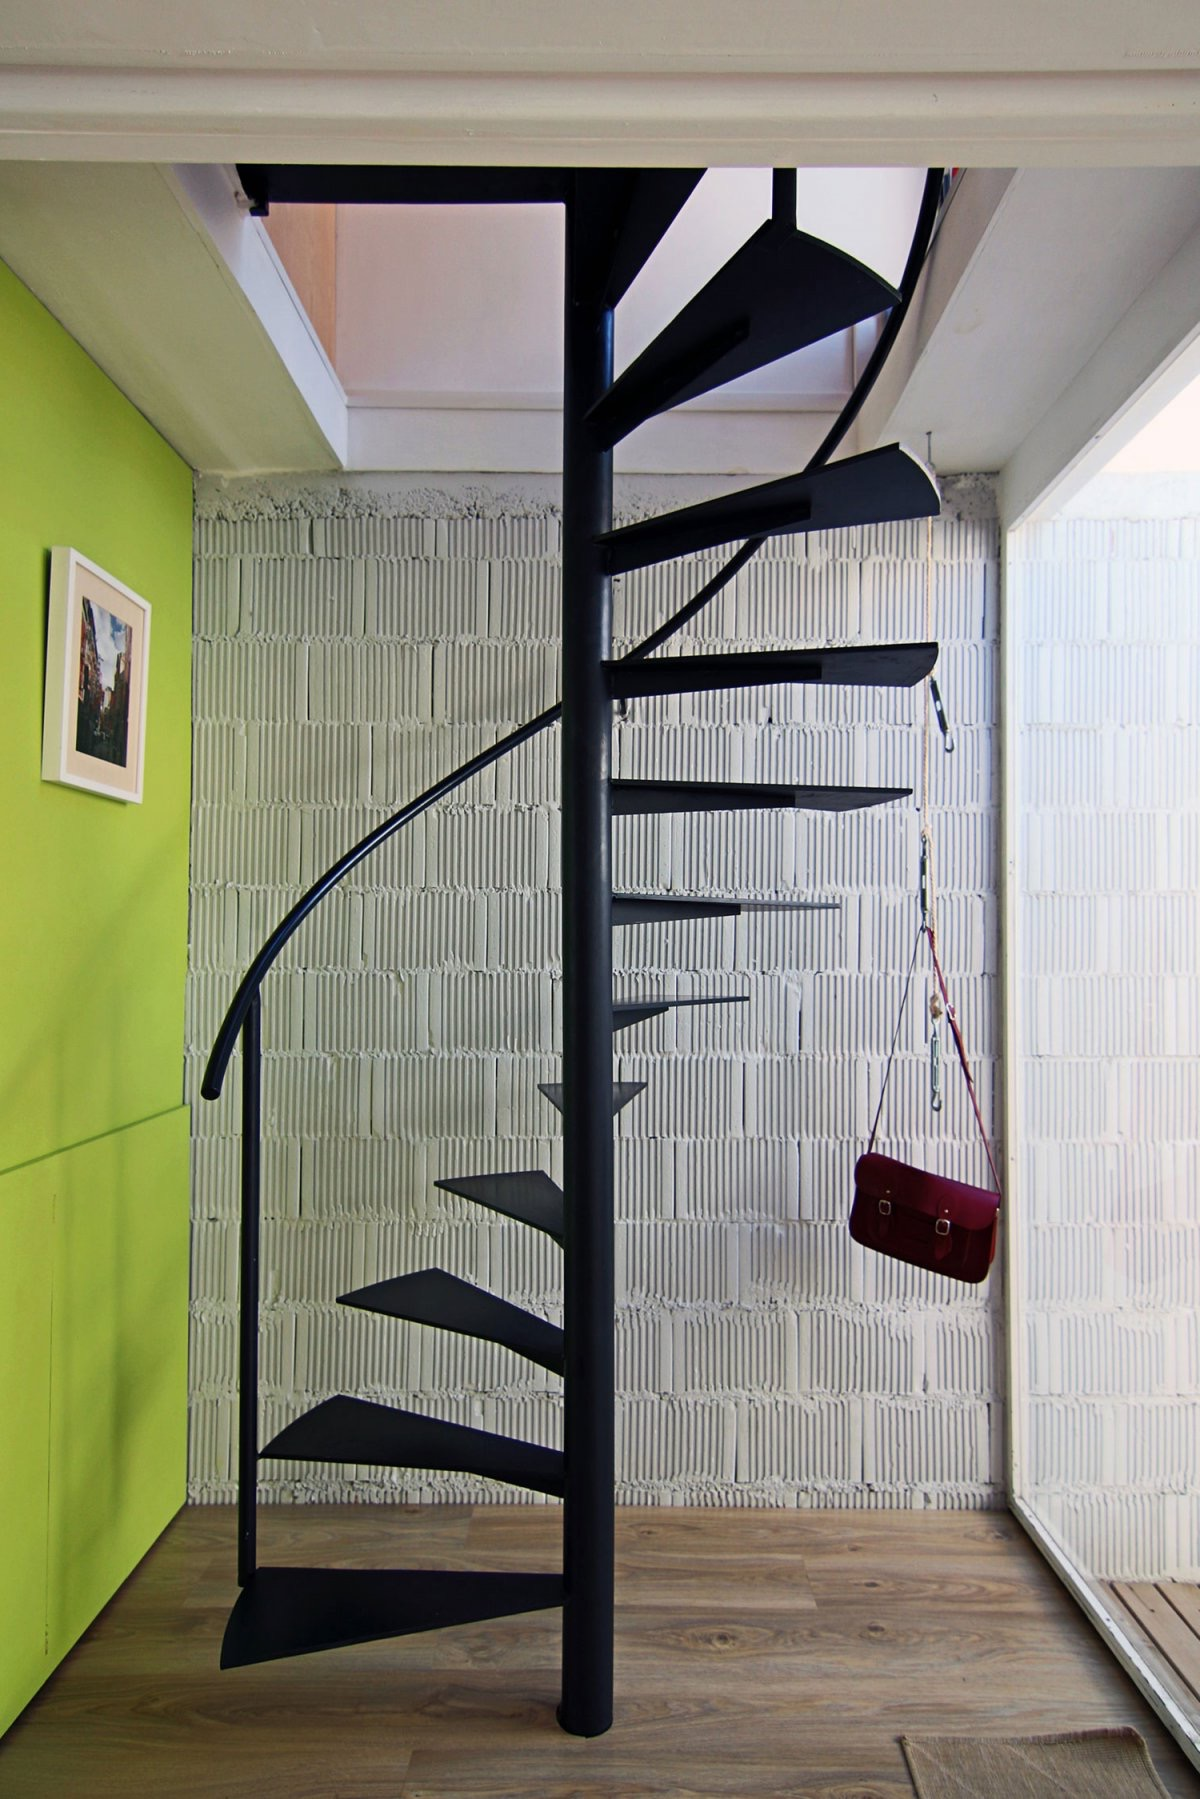 10 beauty loft stairs design ideas custom home design - Spiral staircases for small spaces minimalist ...